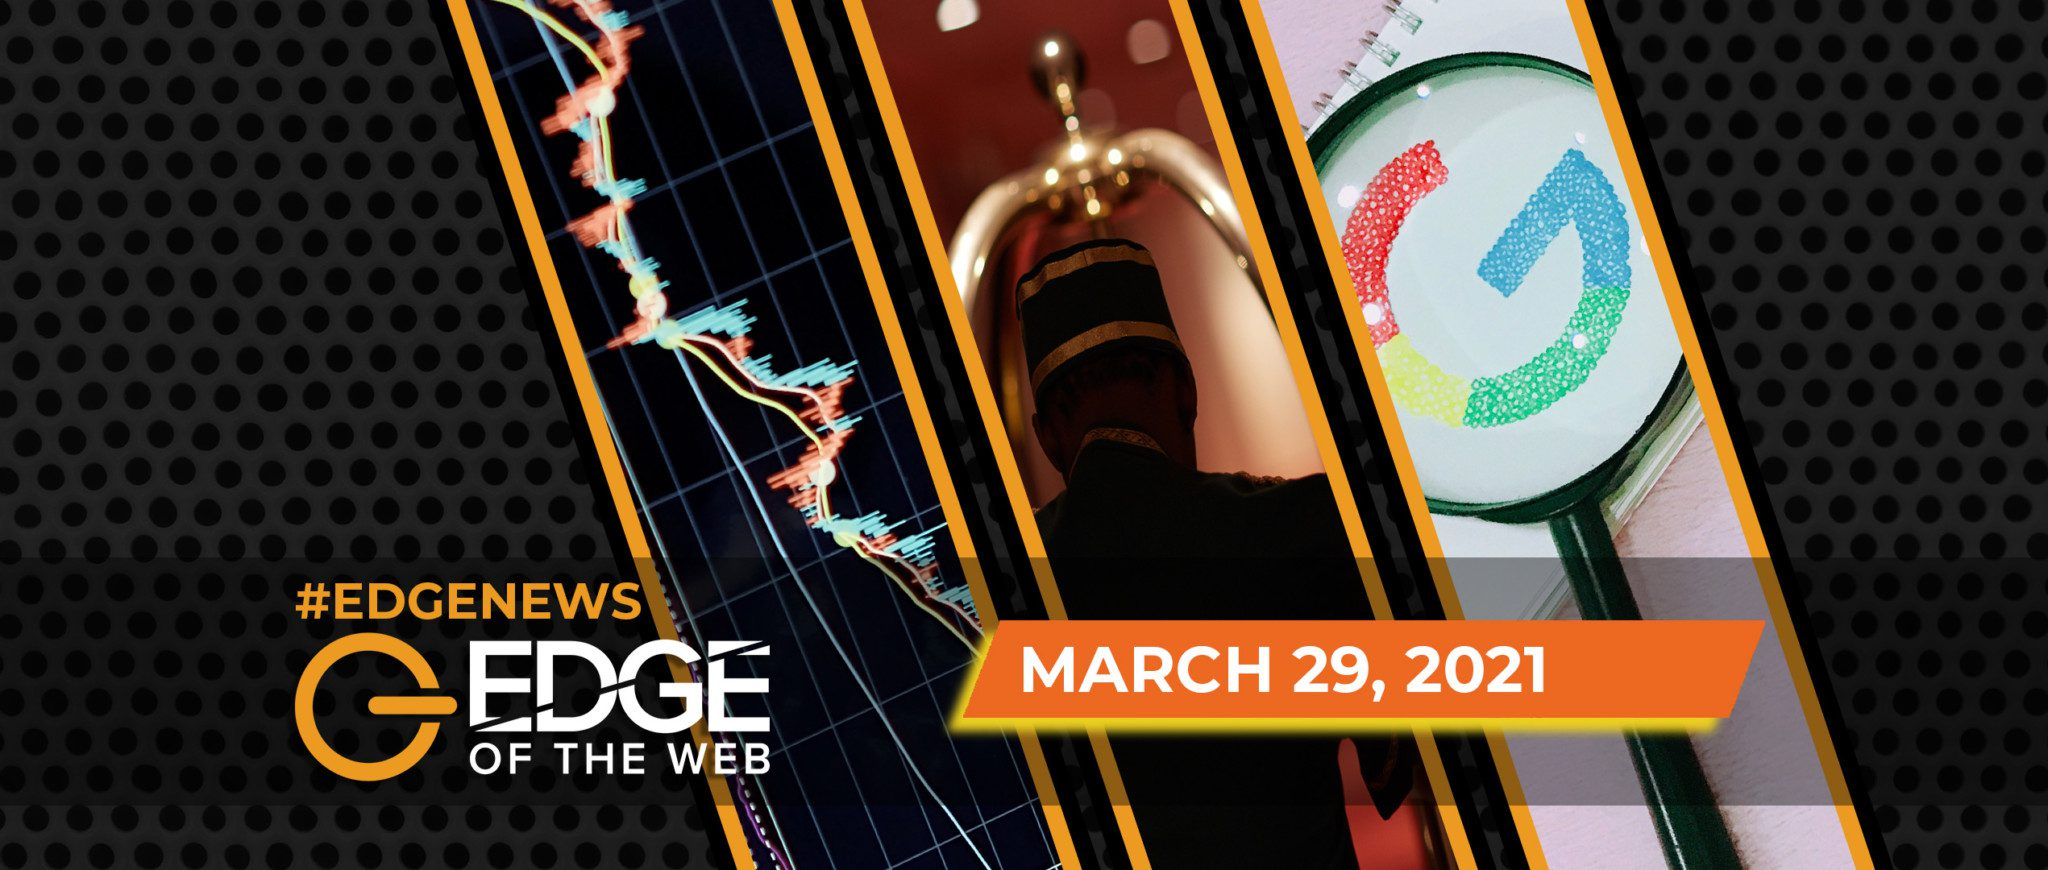 EDGE News EP406 Featured Image